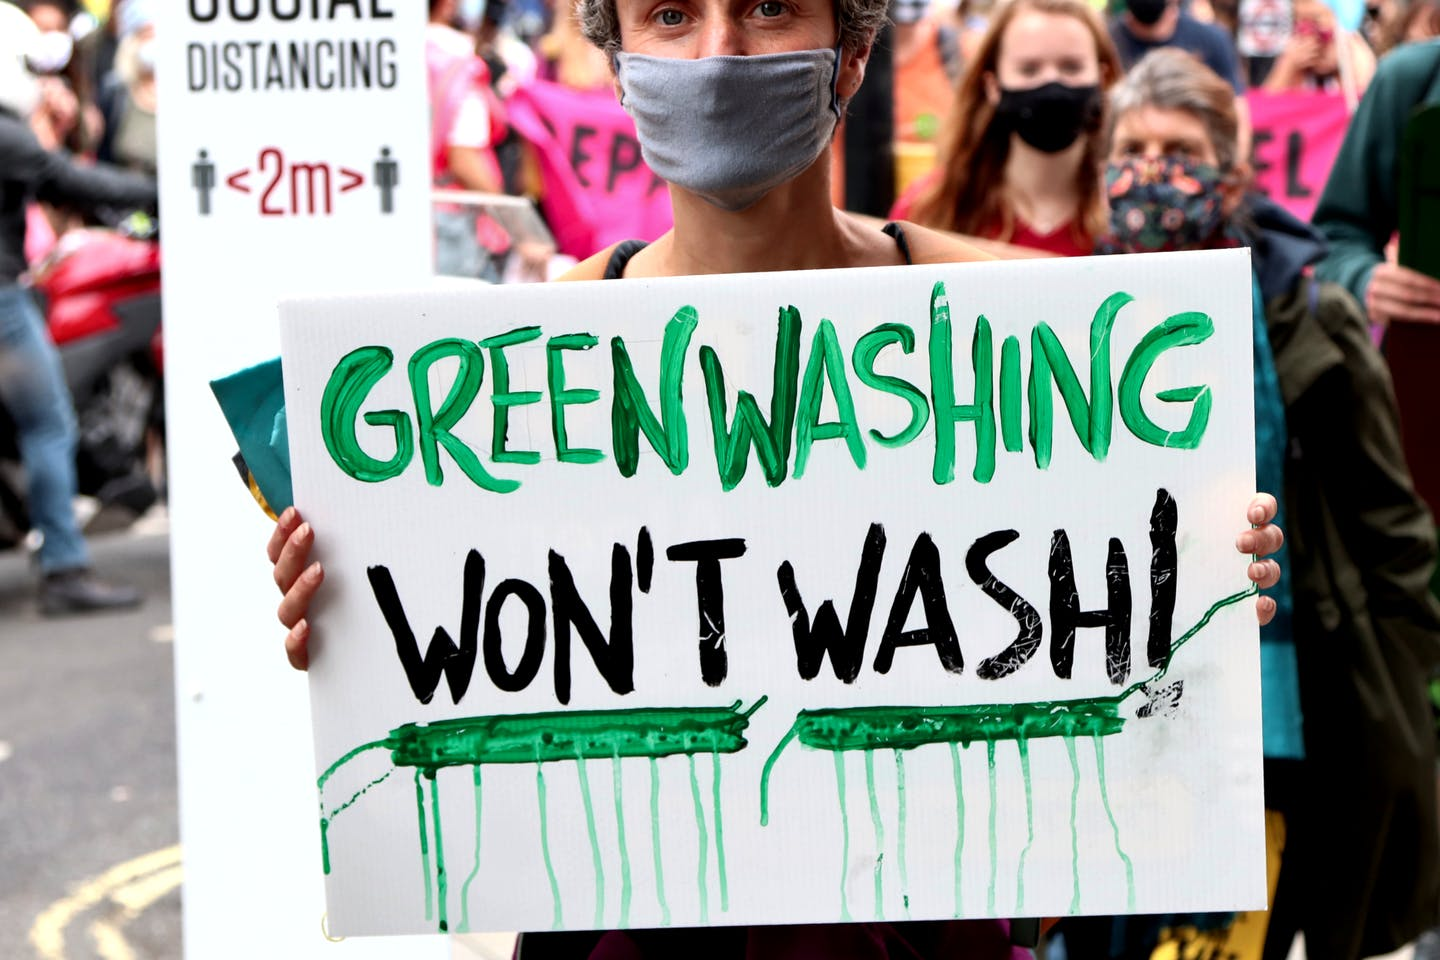 Protest against greenwashing.